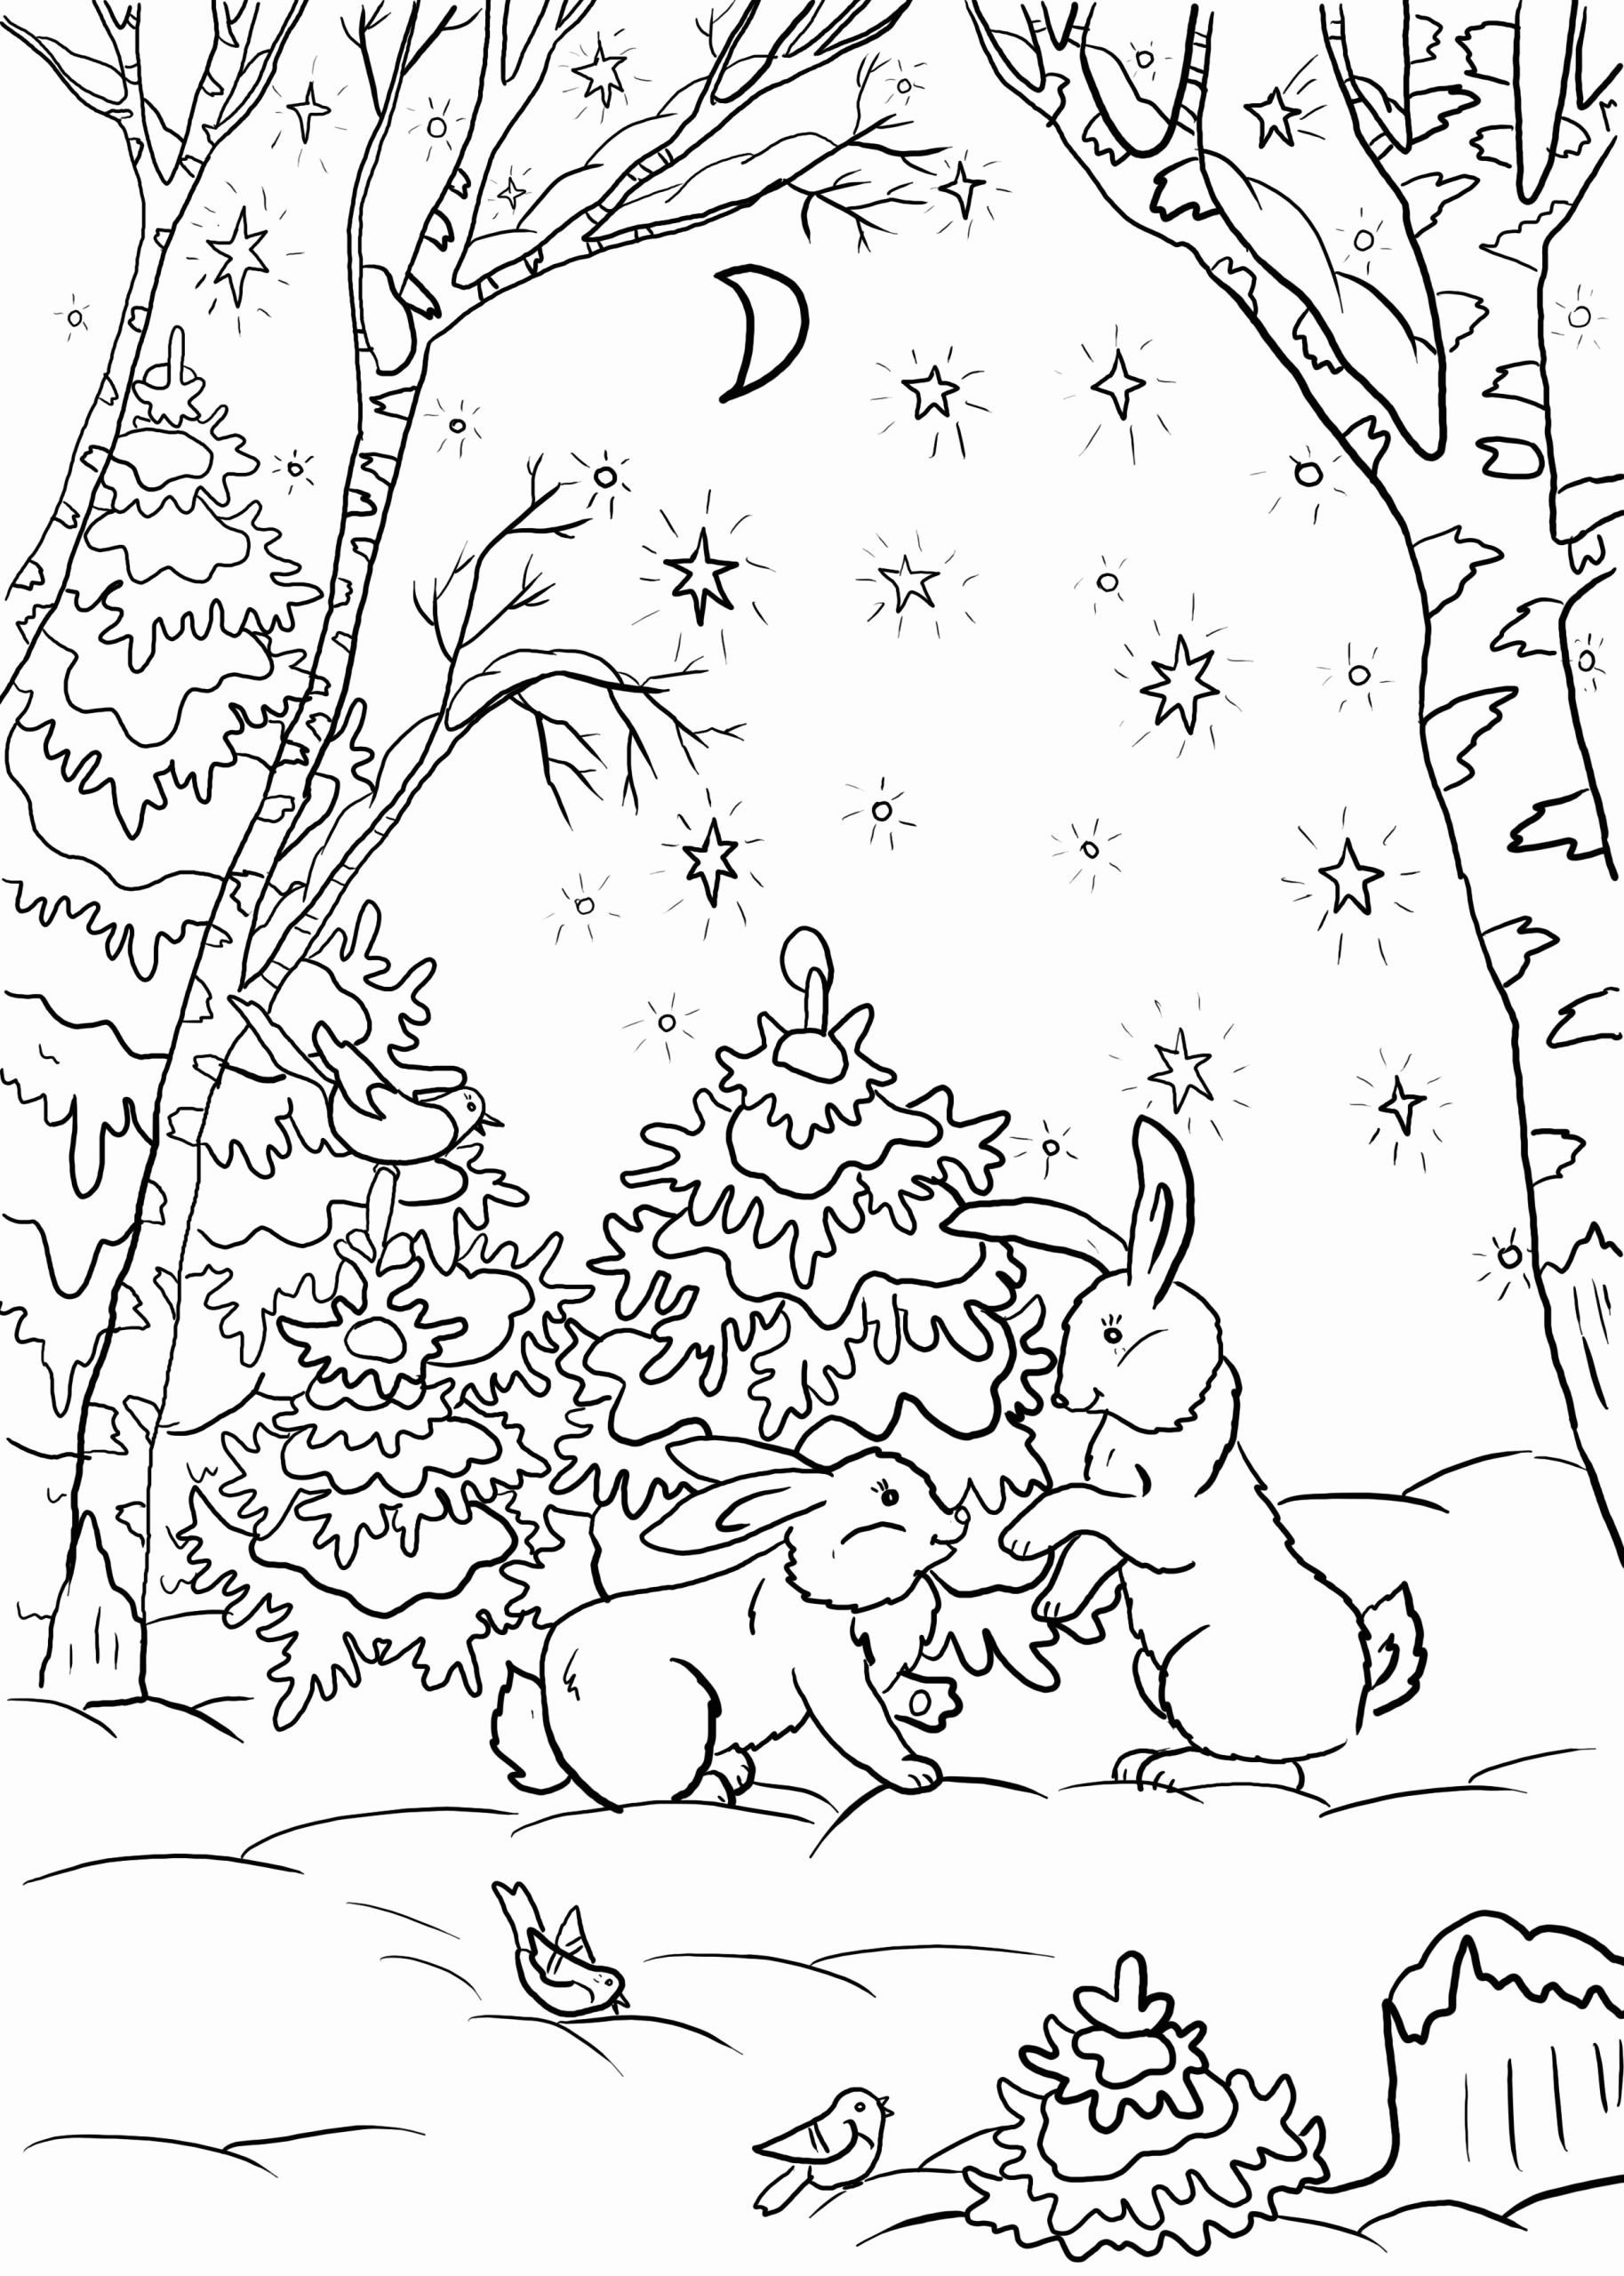 animals in winter coloring pages winter animals coloring pages martin chandra coloring pages pages in animals winter coloring